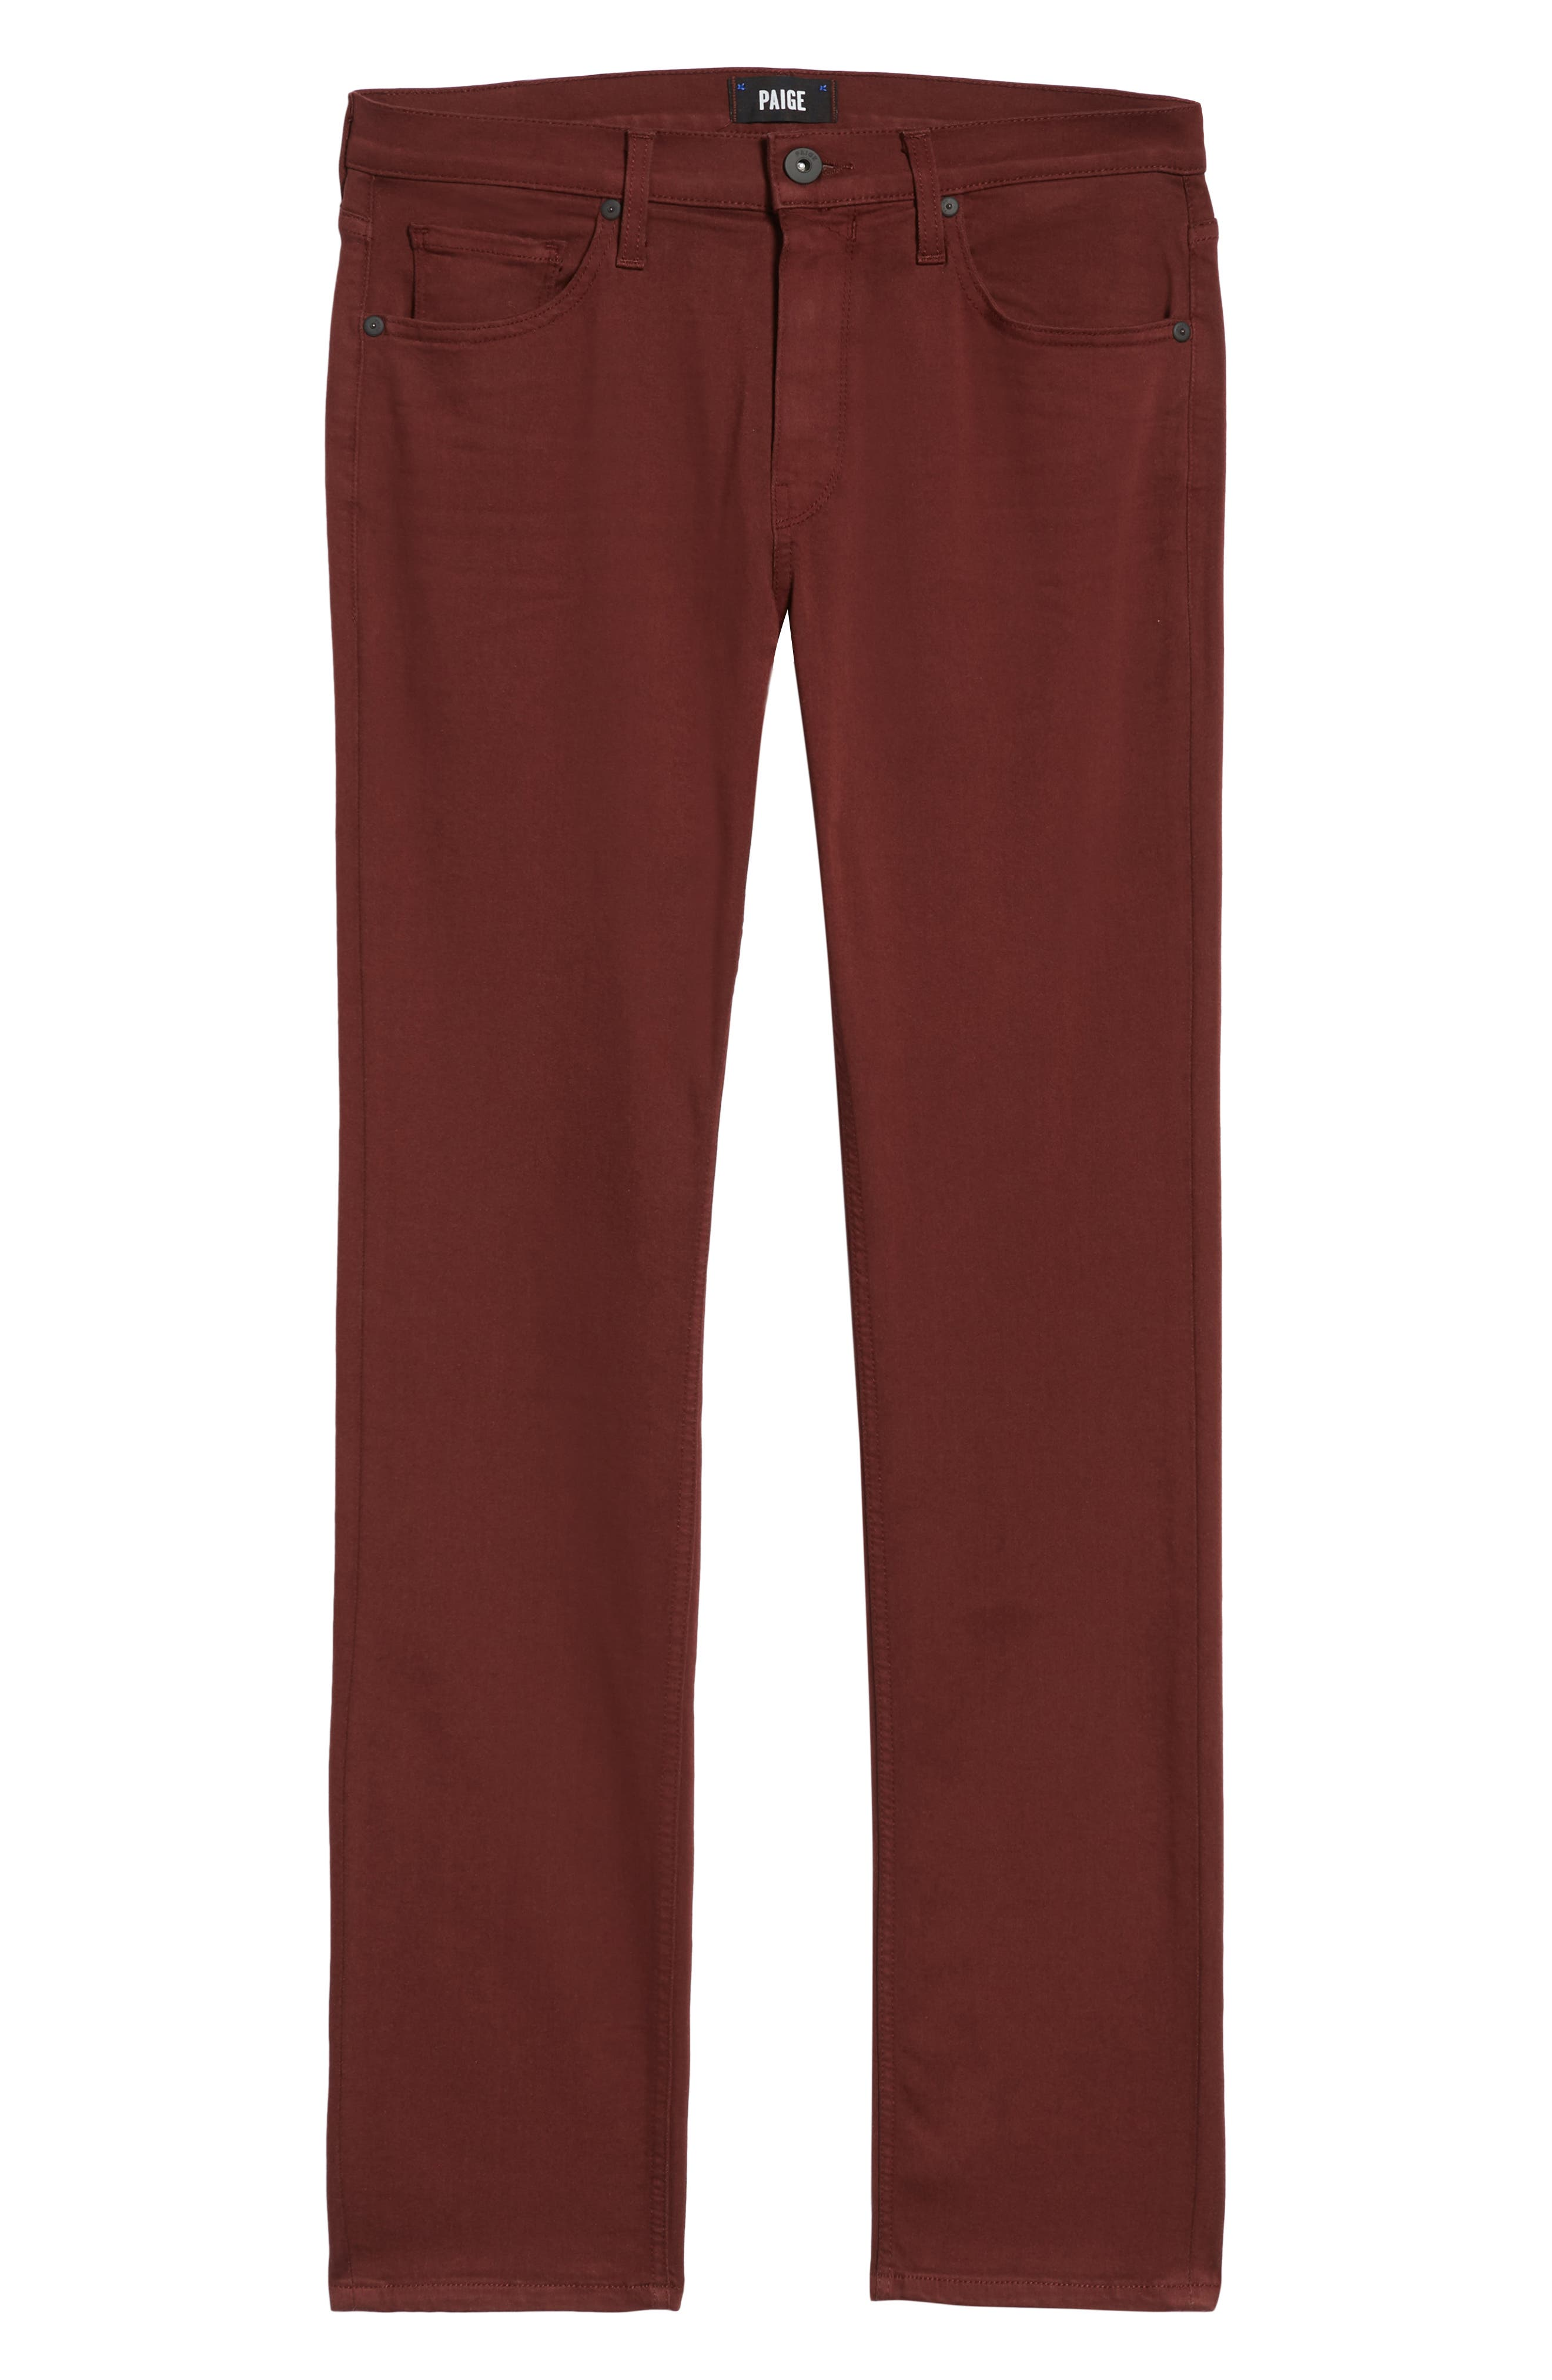 Transcend - Federal Slim Straight Leg Jeans,                             Alternate thumbnail 6, color,                             RUSTIC WINE